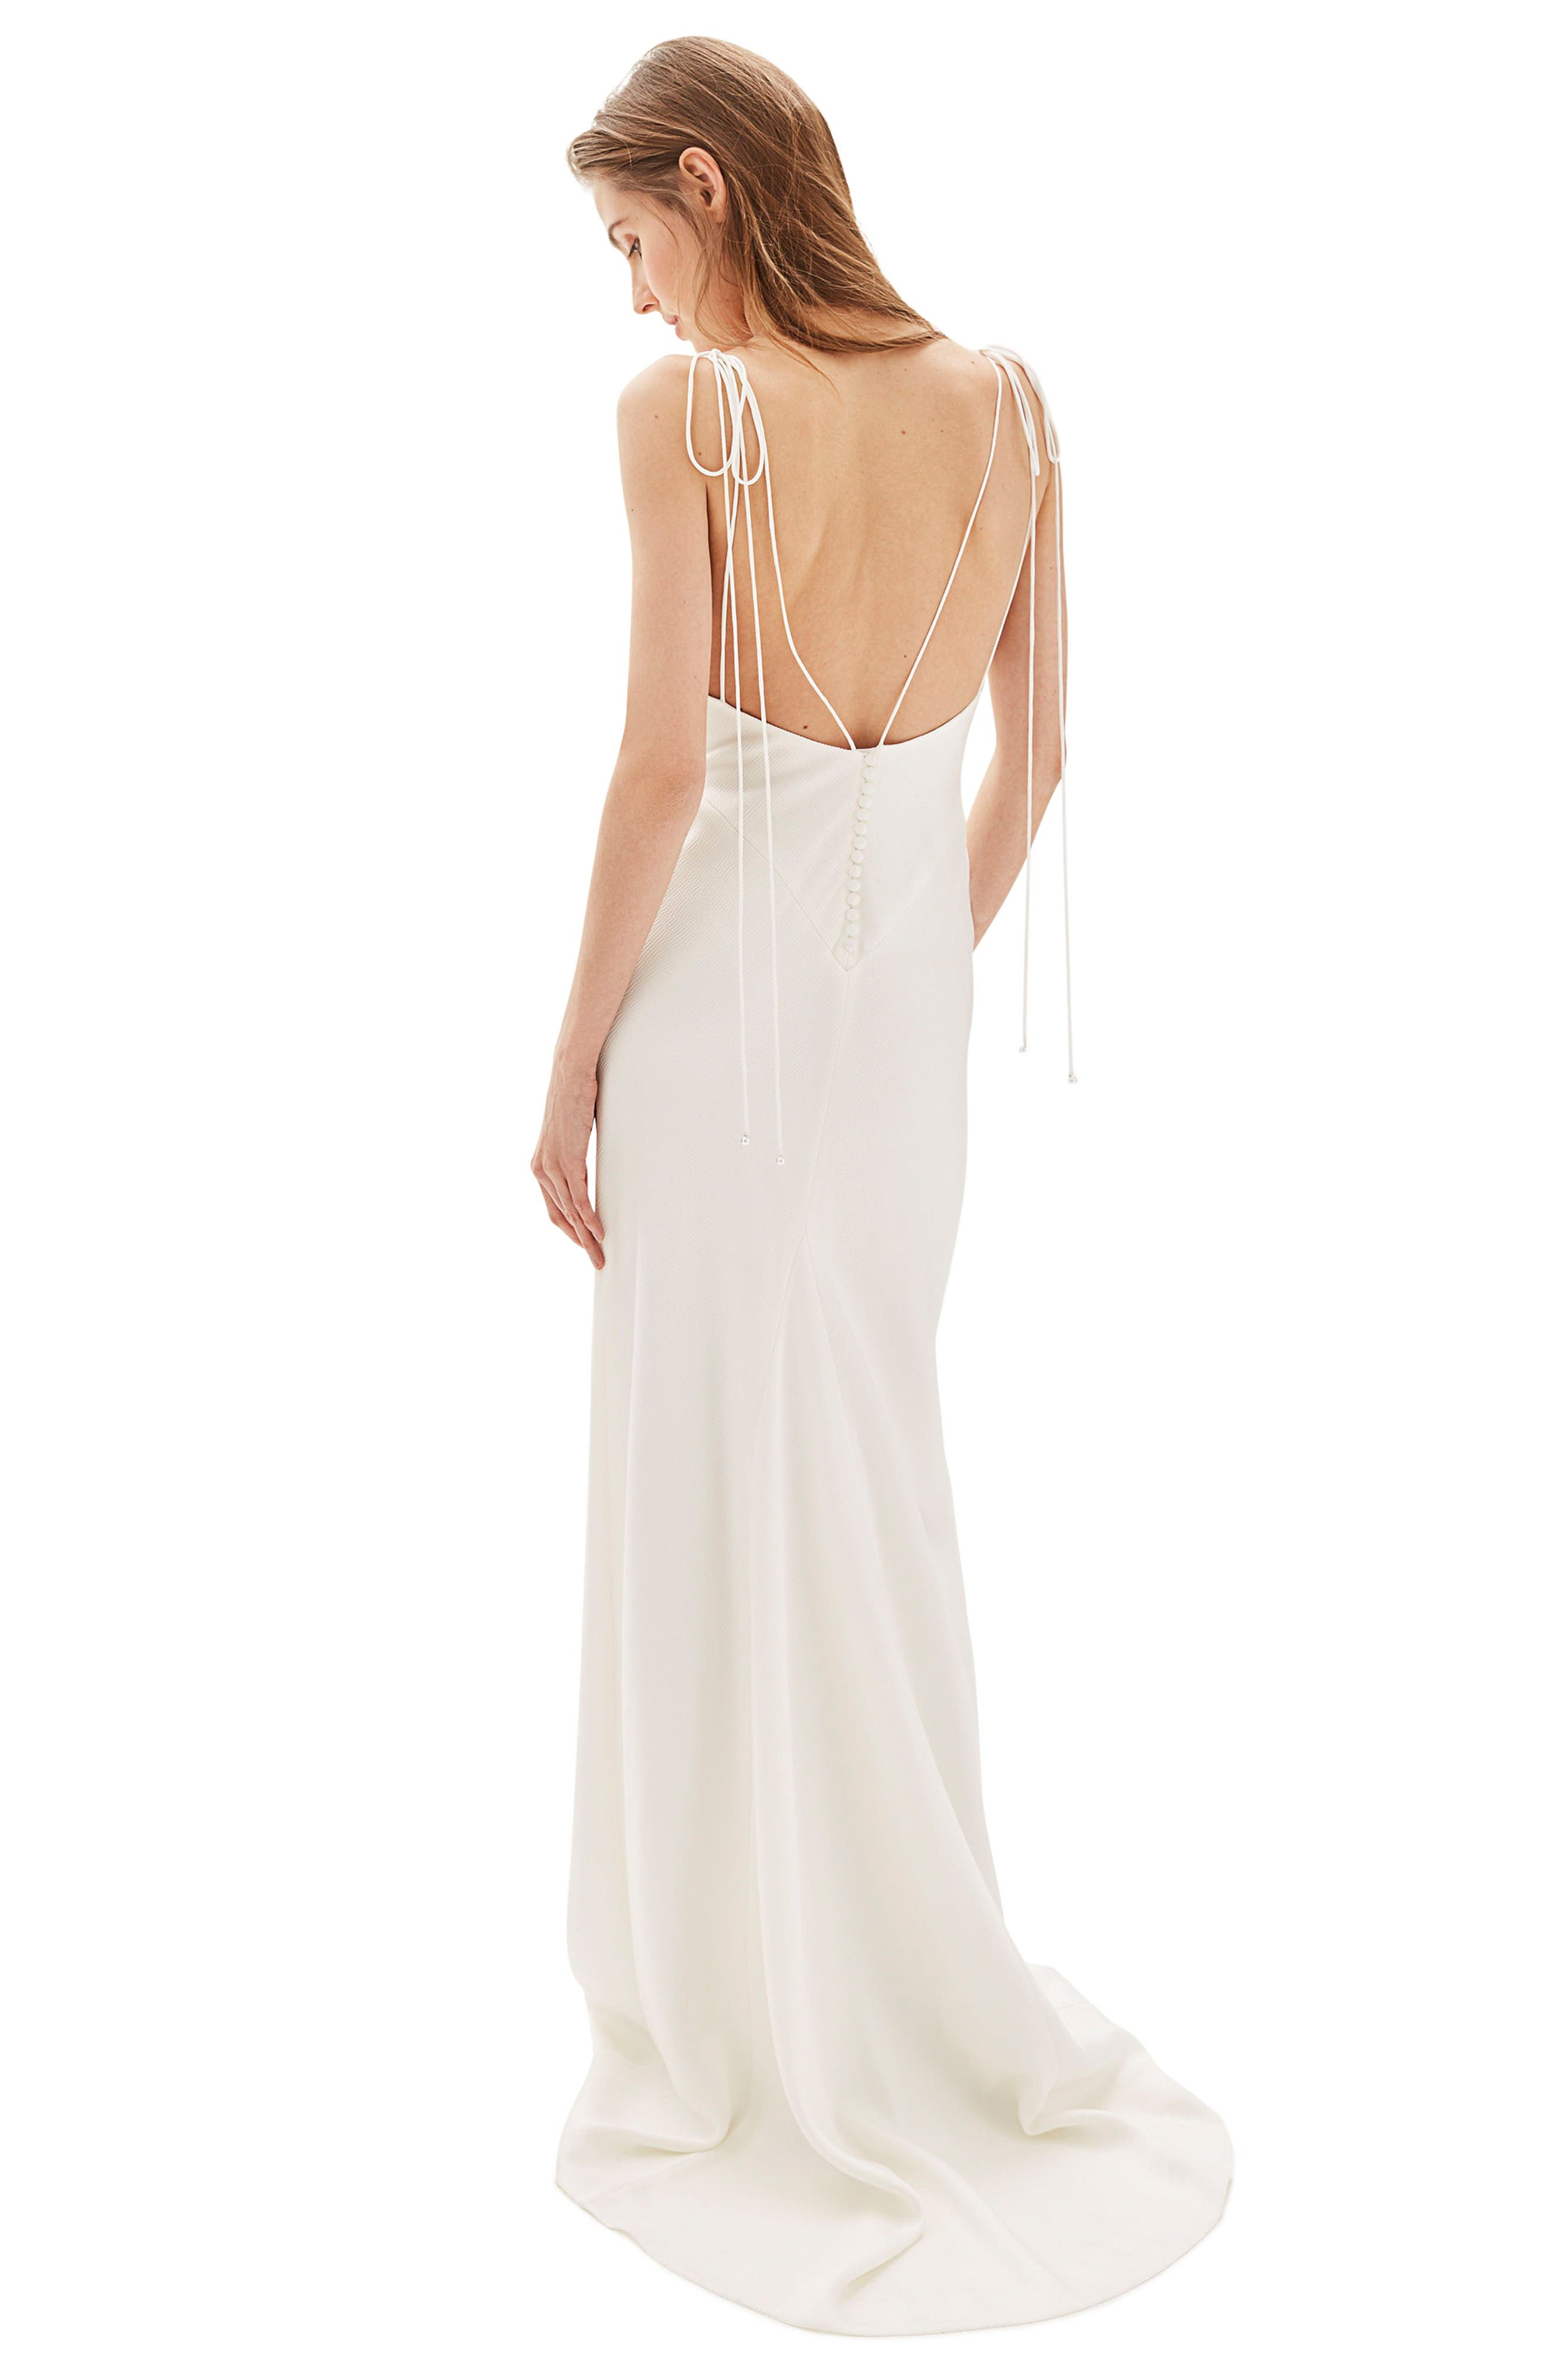 Bride V-Neck Satin Sheath Gown,                             Alternate thumbnail 3, color,                             Ivory